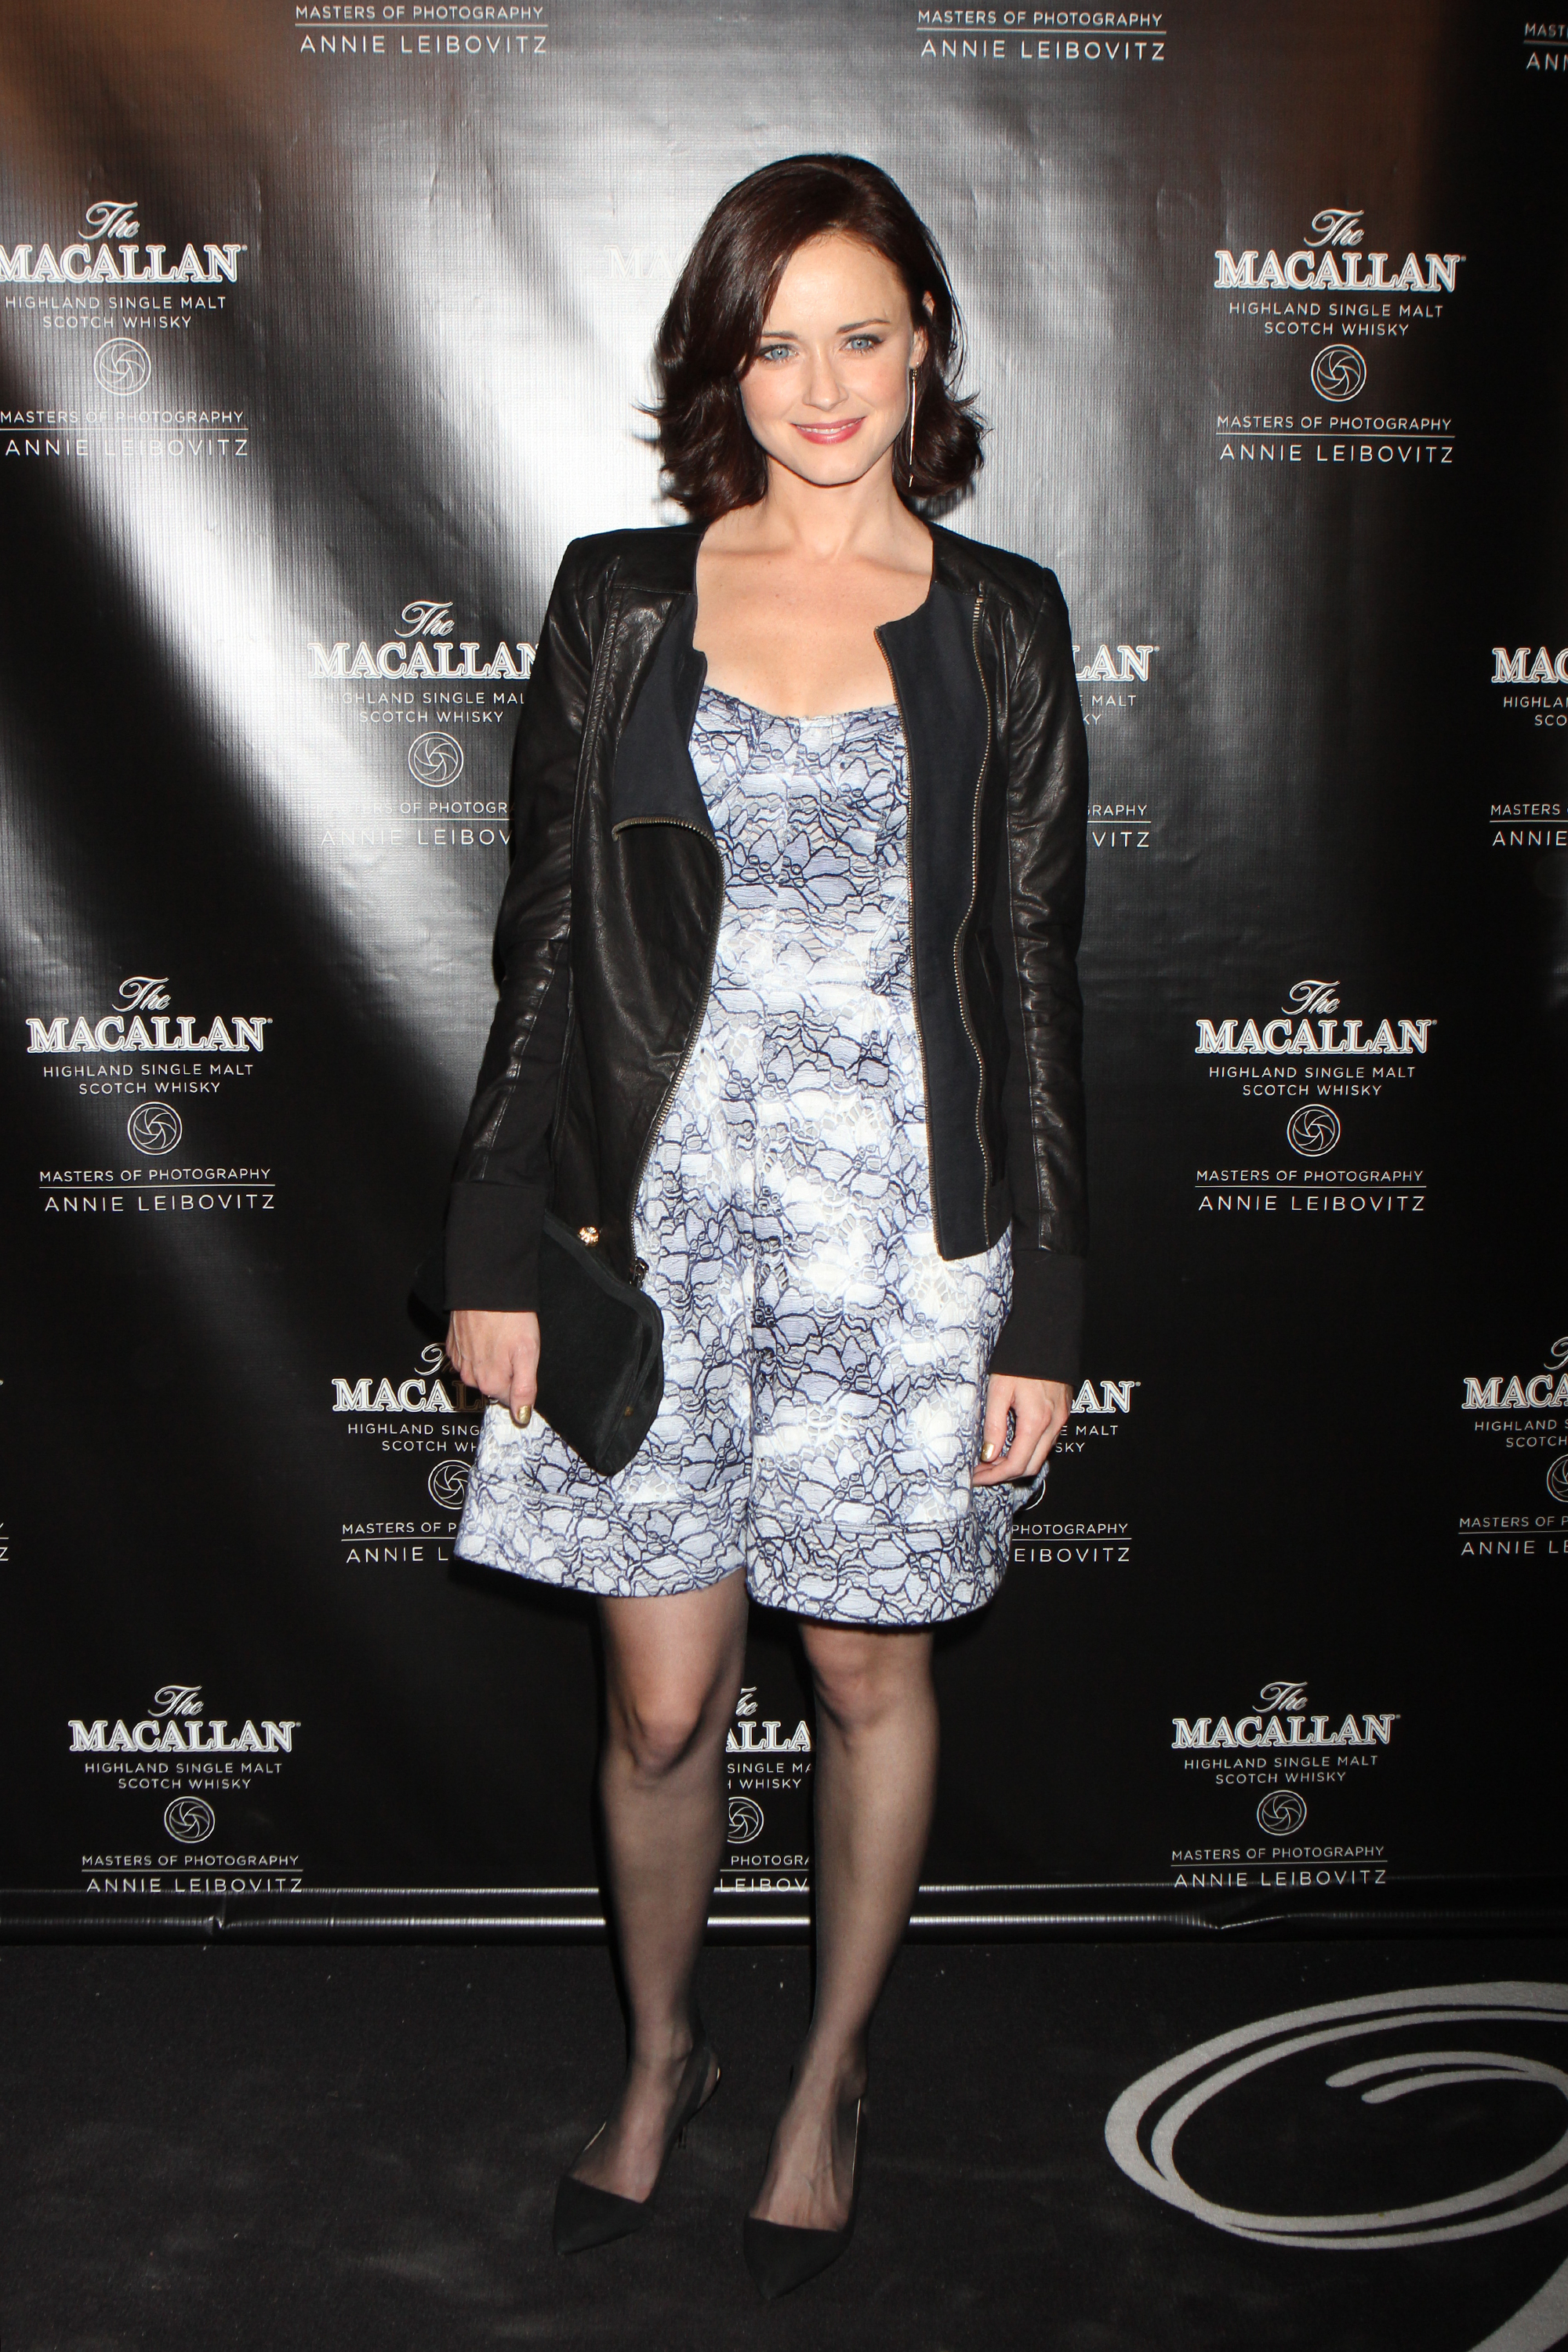 Alexis Bledel - The Macallan Masters Of Photography Series Launch - NYC - 101012_001.jpg